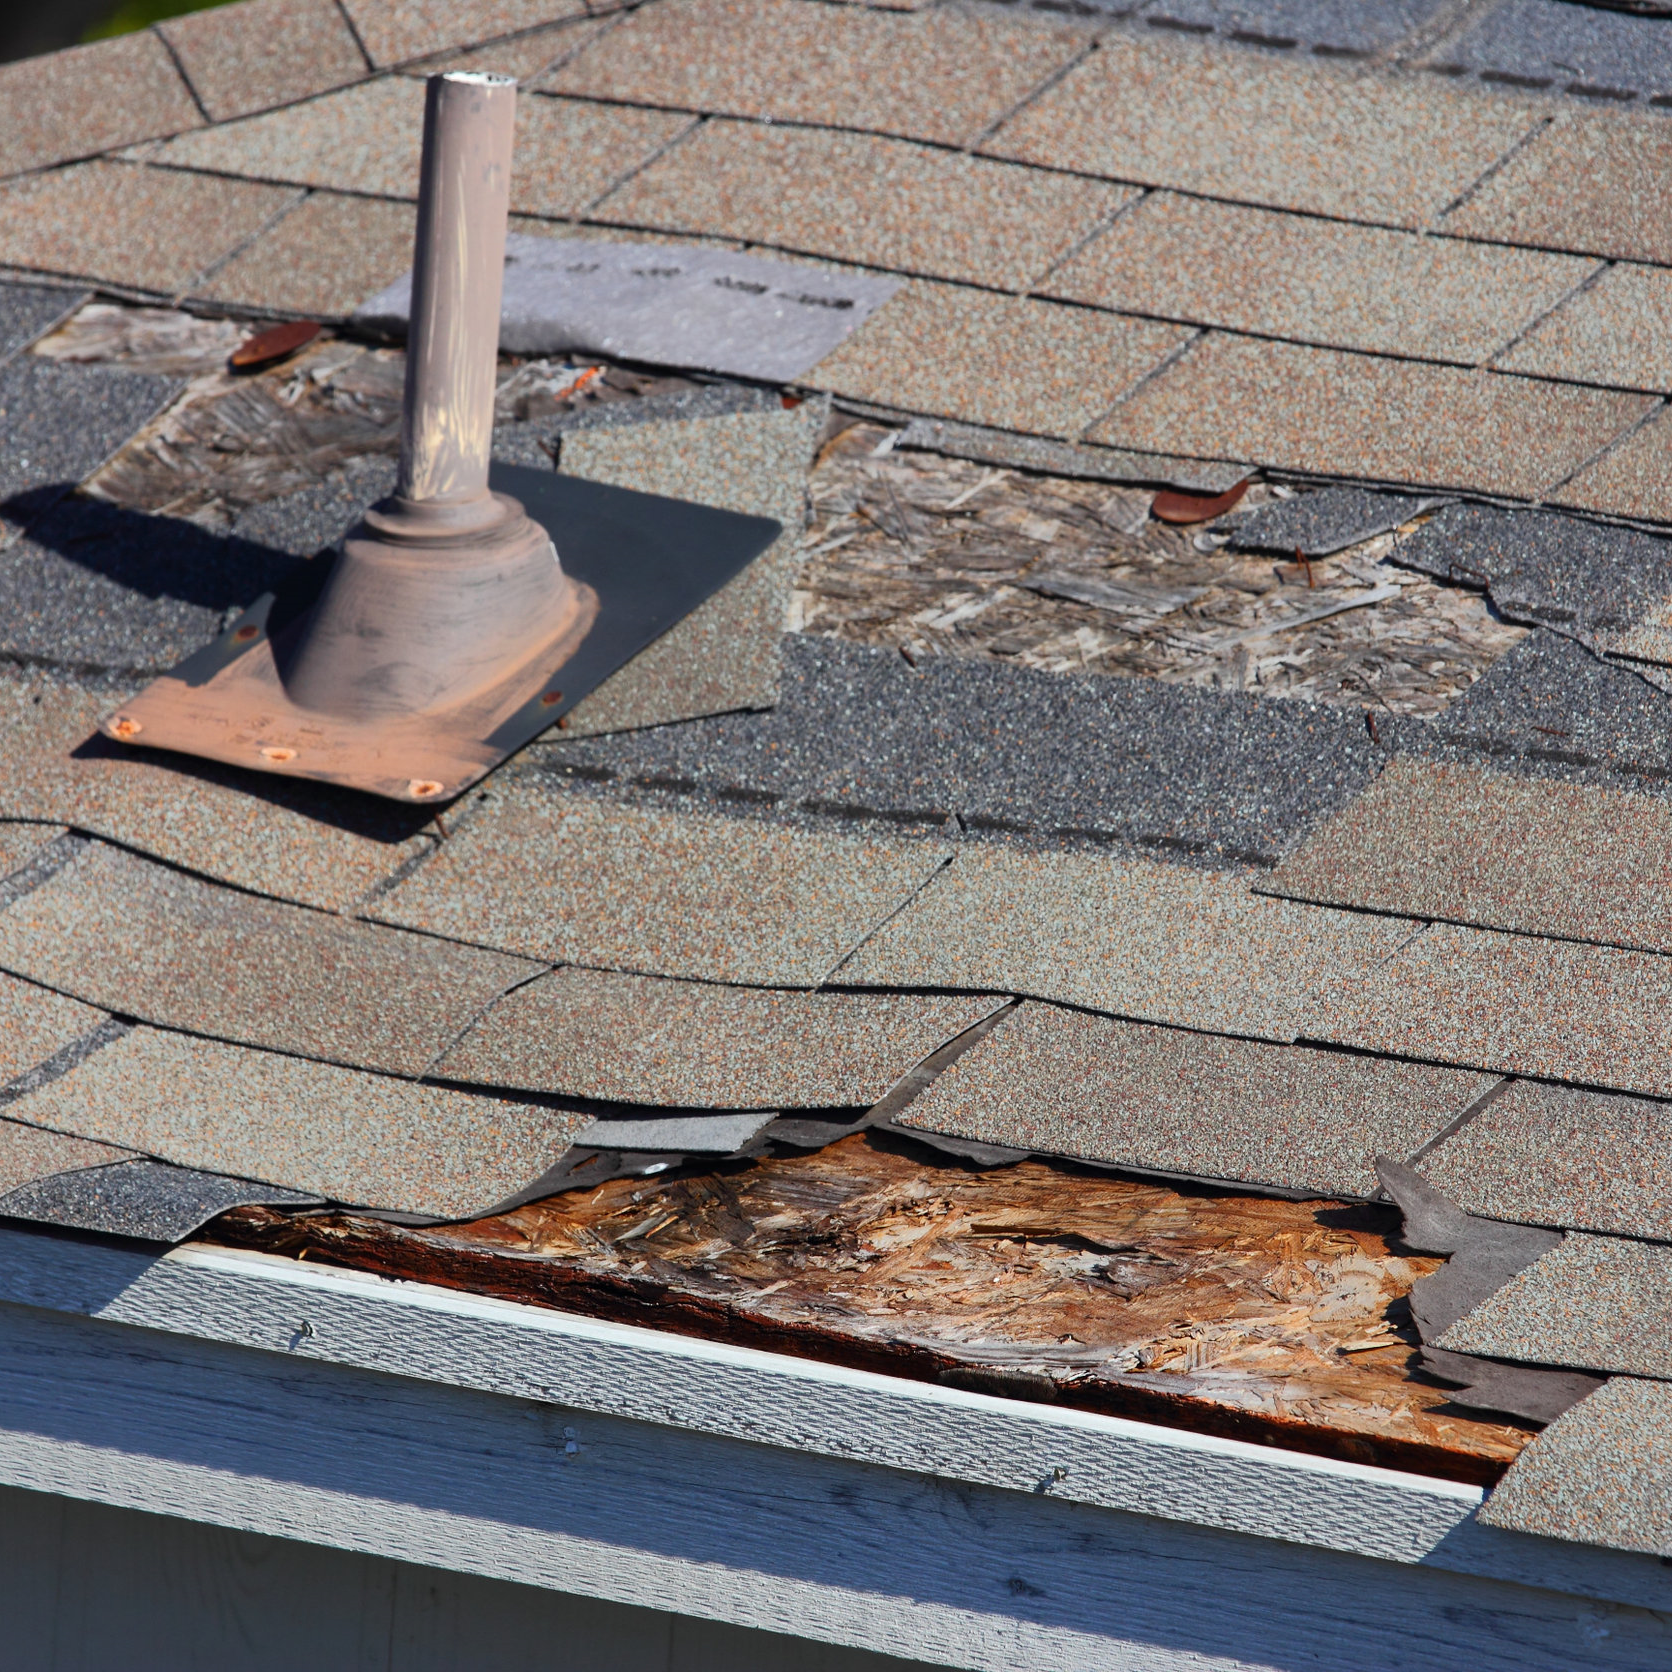 Blown-off roof shingles